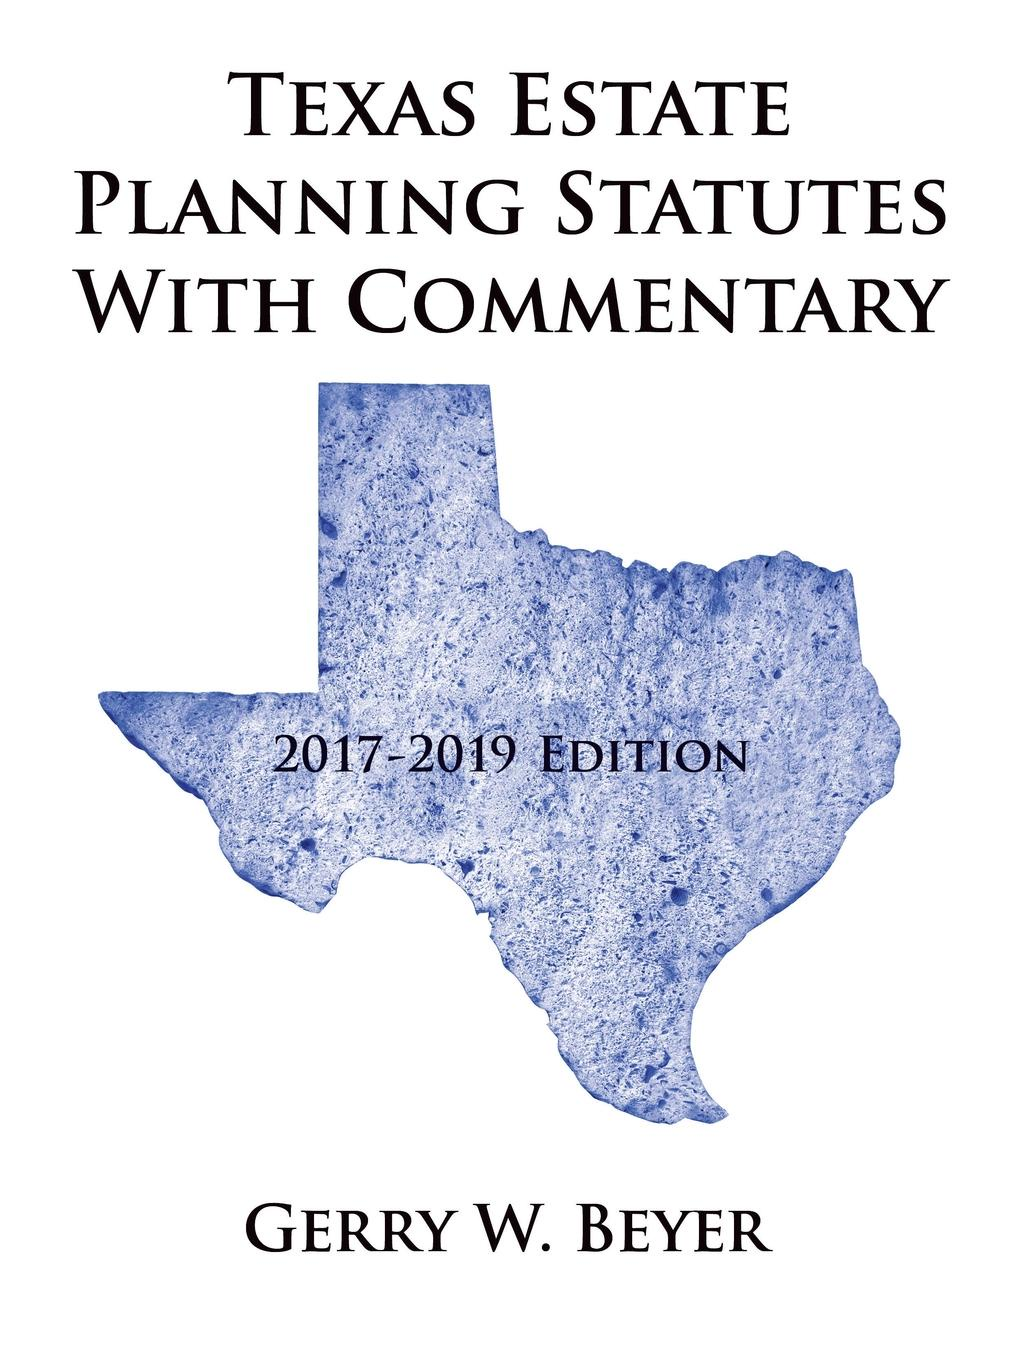 Gerry W. Beyer Texas Estate Planning Statutes with Commentary. 2017-2019 Edition george h gray estate planning and administration a simple guide for new yorkers